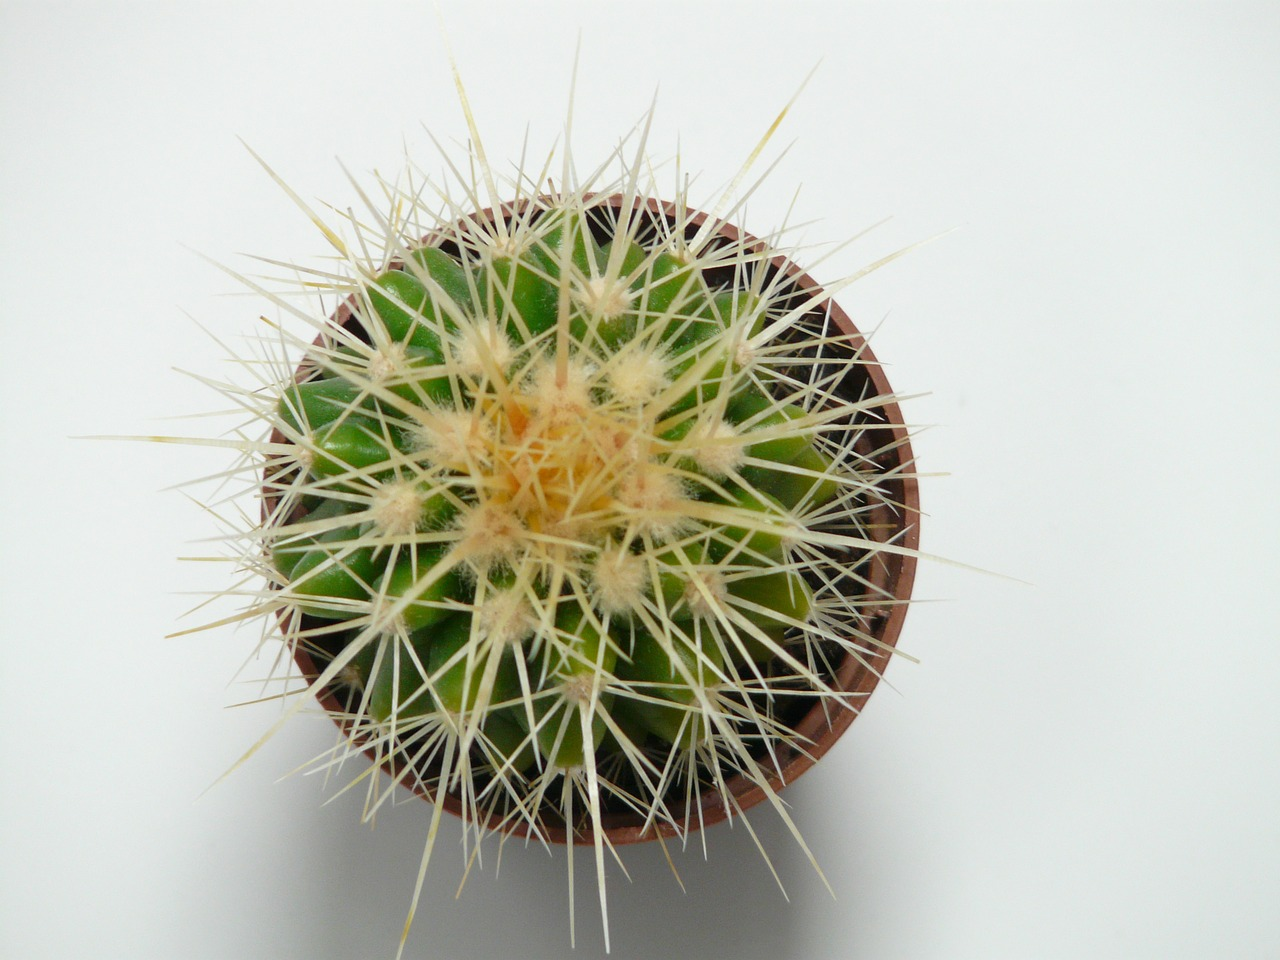 golden ball cactus,cactus,cactus greenhouse,echinocactus,spur,prickly,plant,green,mother in law chair,spiny,echinocactus grusonii,free pictures, free photos, free images, royalty free, free illustrations